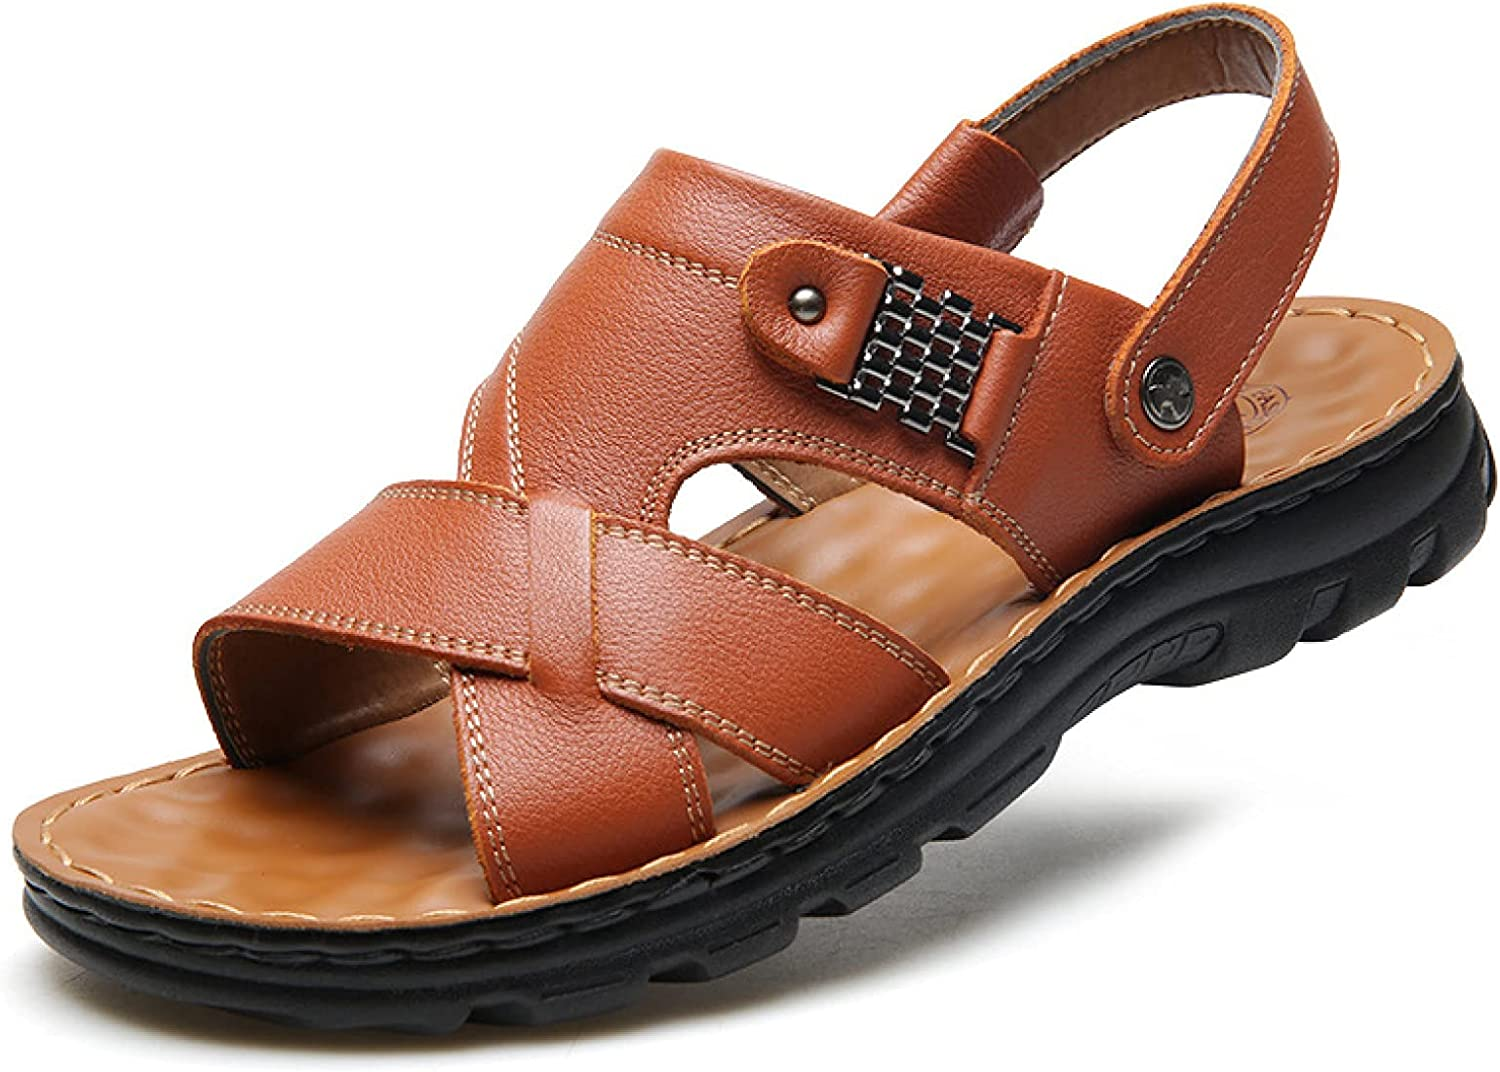 Men Summer Ranking TOP1 Hiking Open Toe Rubber Sandal Sole Two Wa Max 55% OFF Lightweight